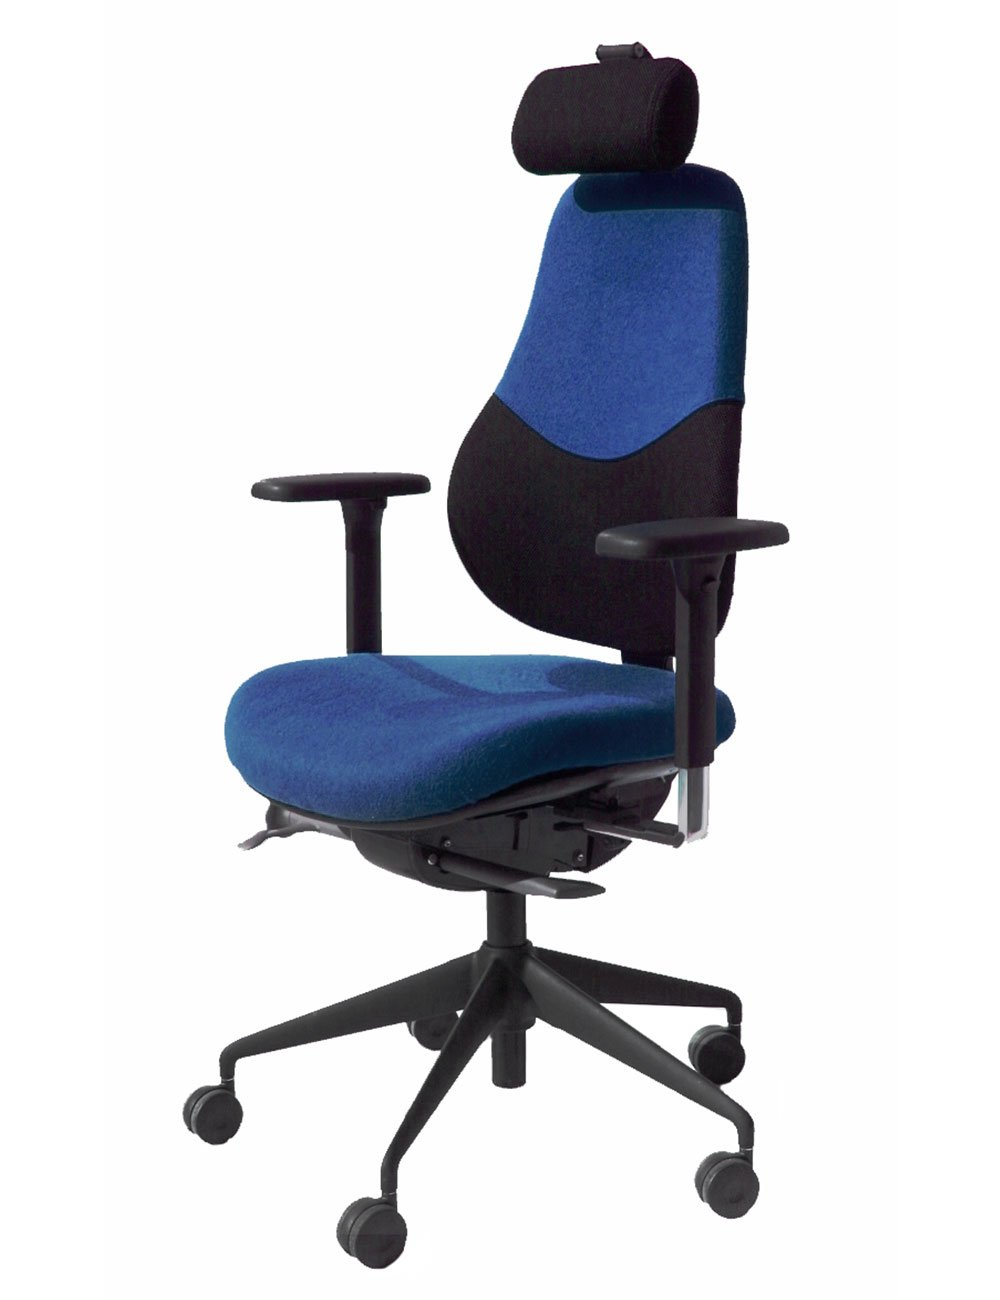 Active Ergonomics Flo 3 Chair High Back